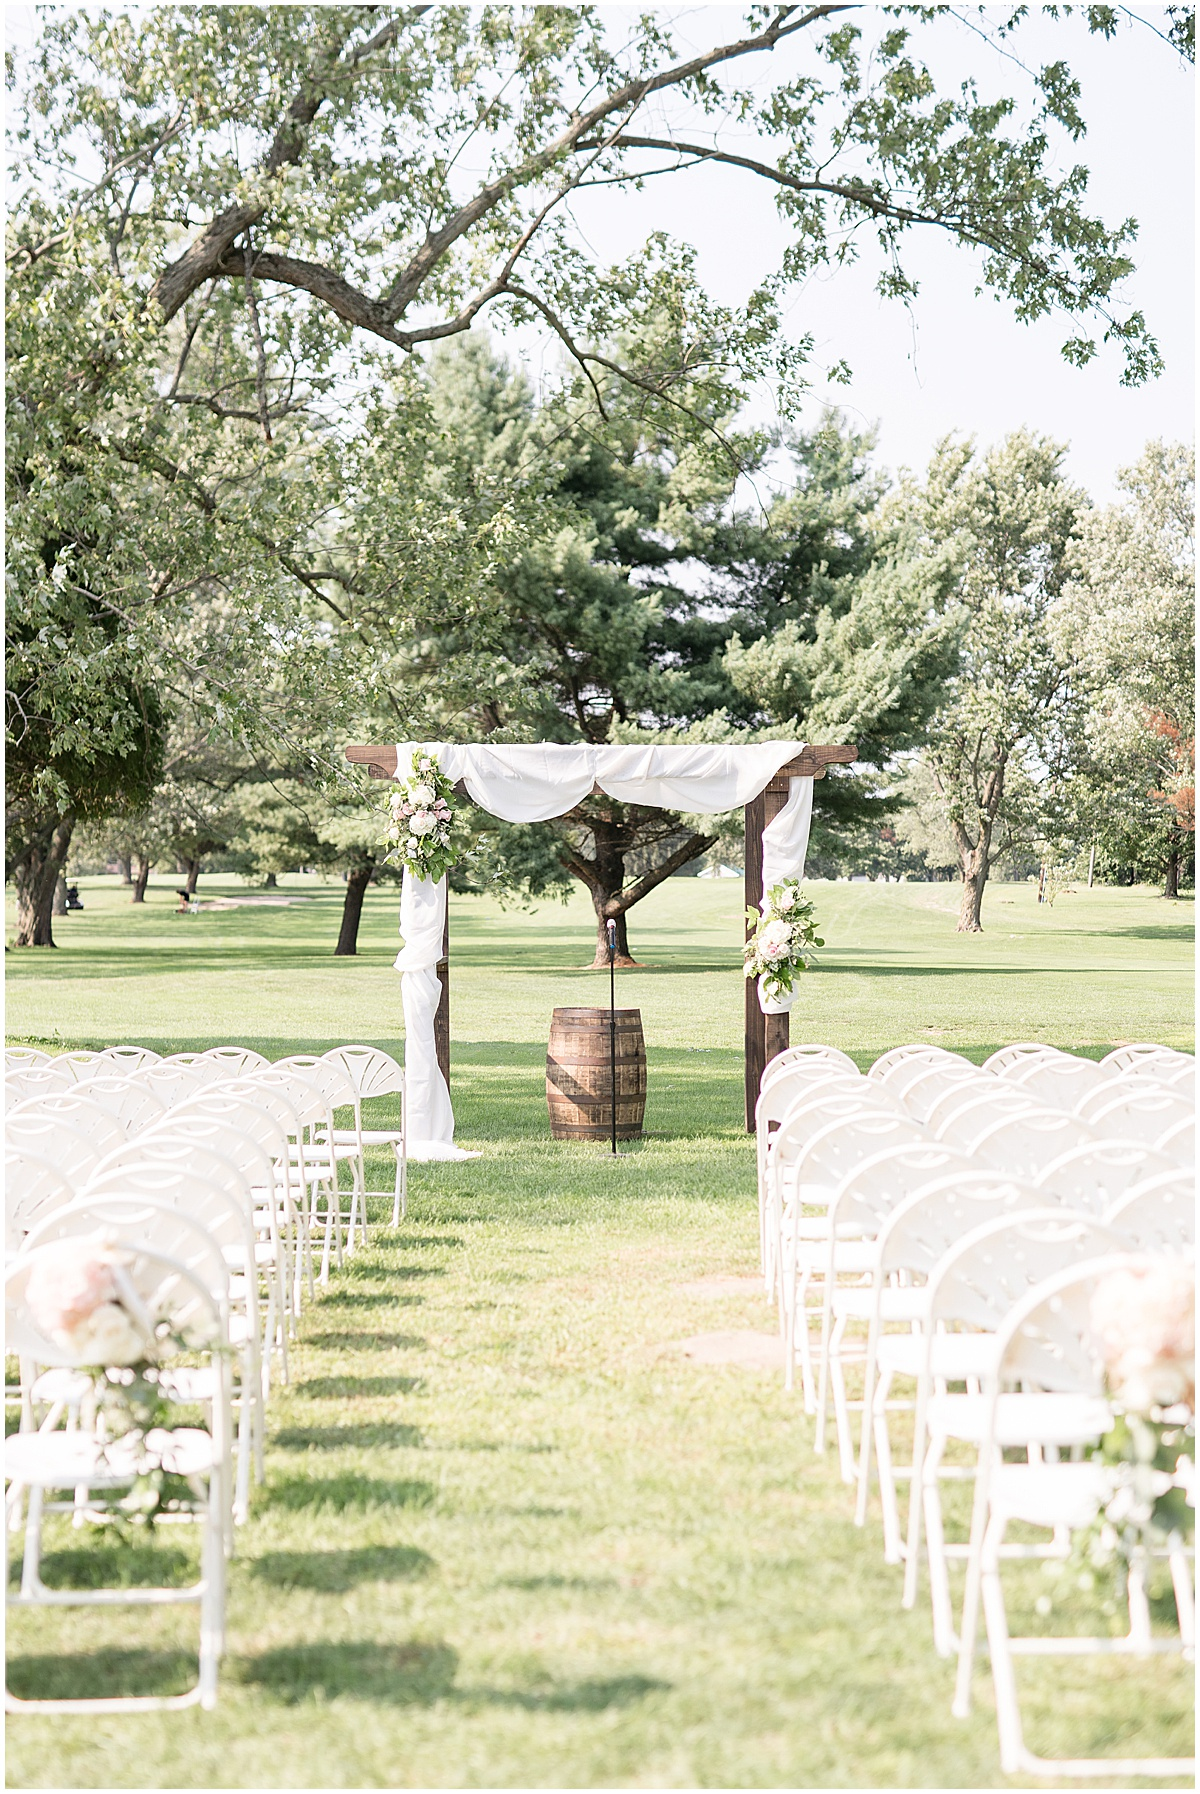 Details of wedding at The Edge in Anderson, Indiana